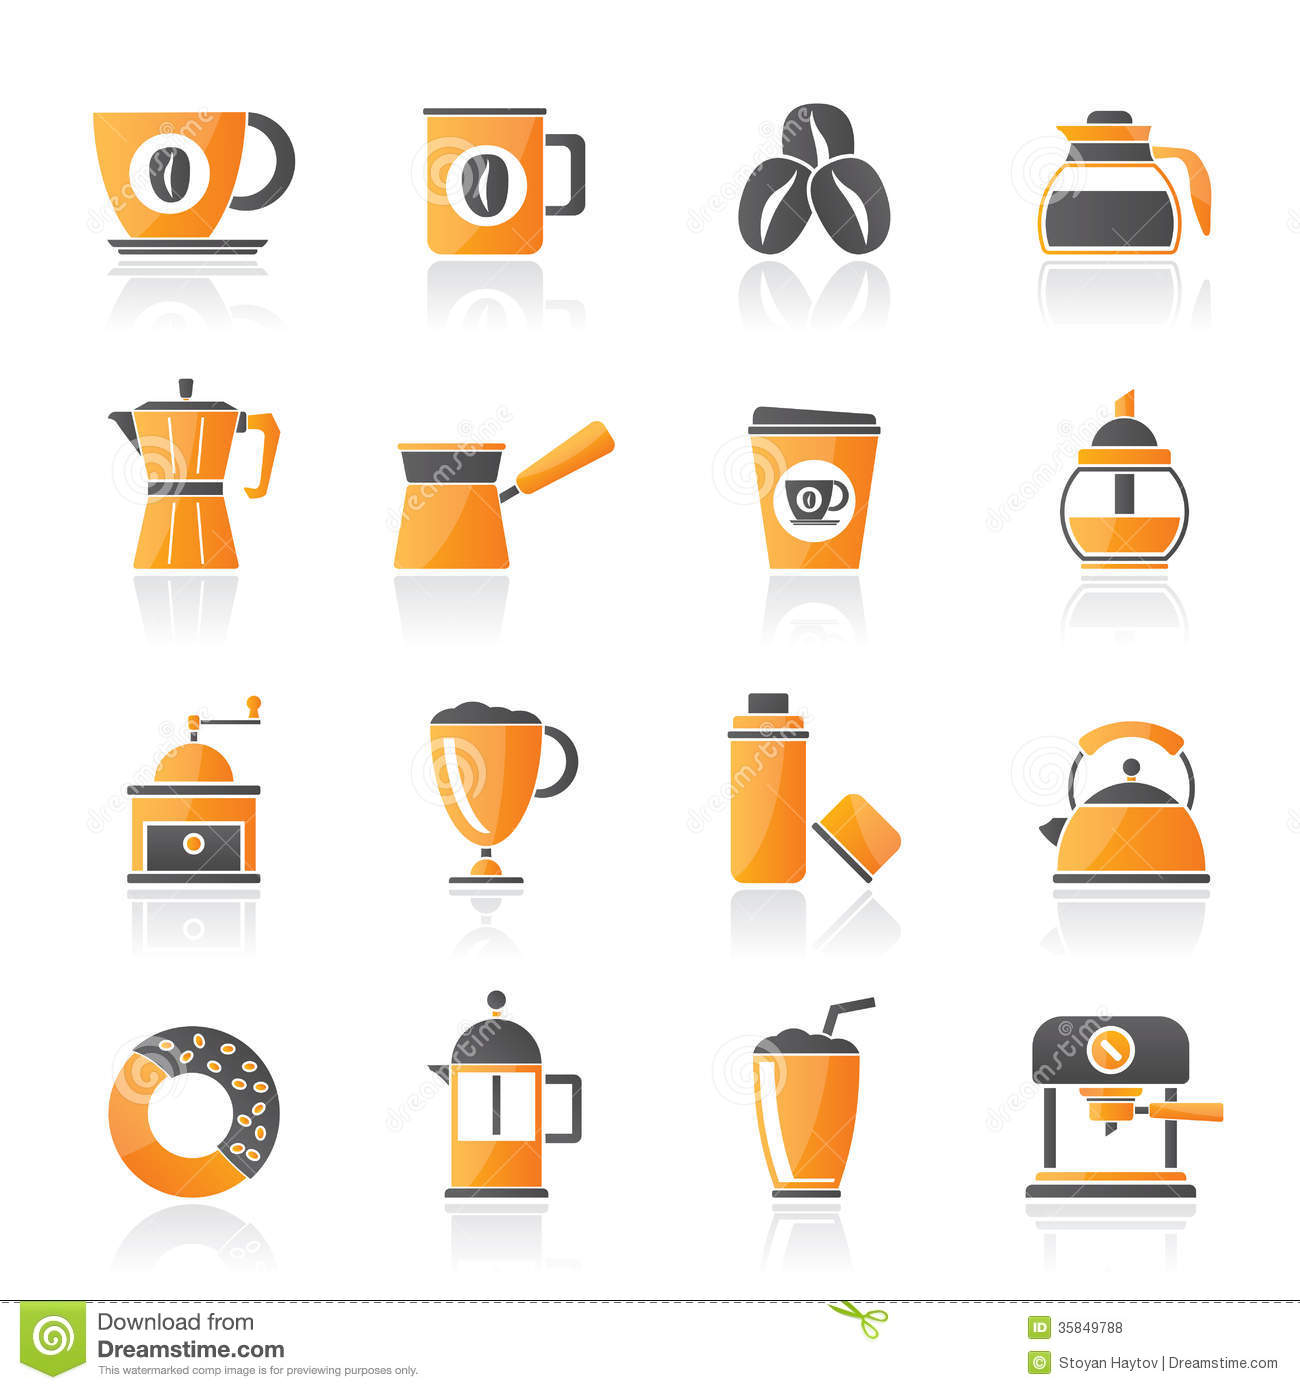 Different types of coffee industry icons- vector icon set.: www.dreamstime.com/royalty-free-stock-photos-different-types-coffee...